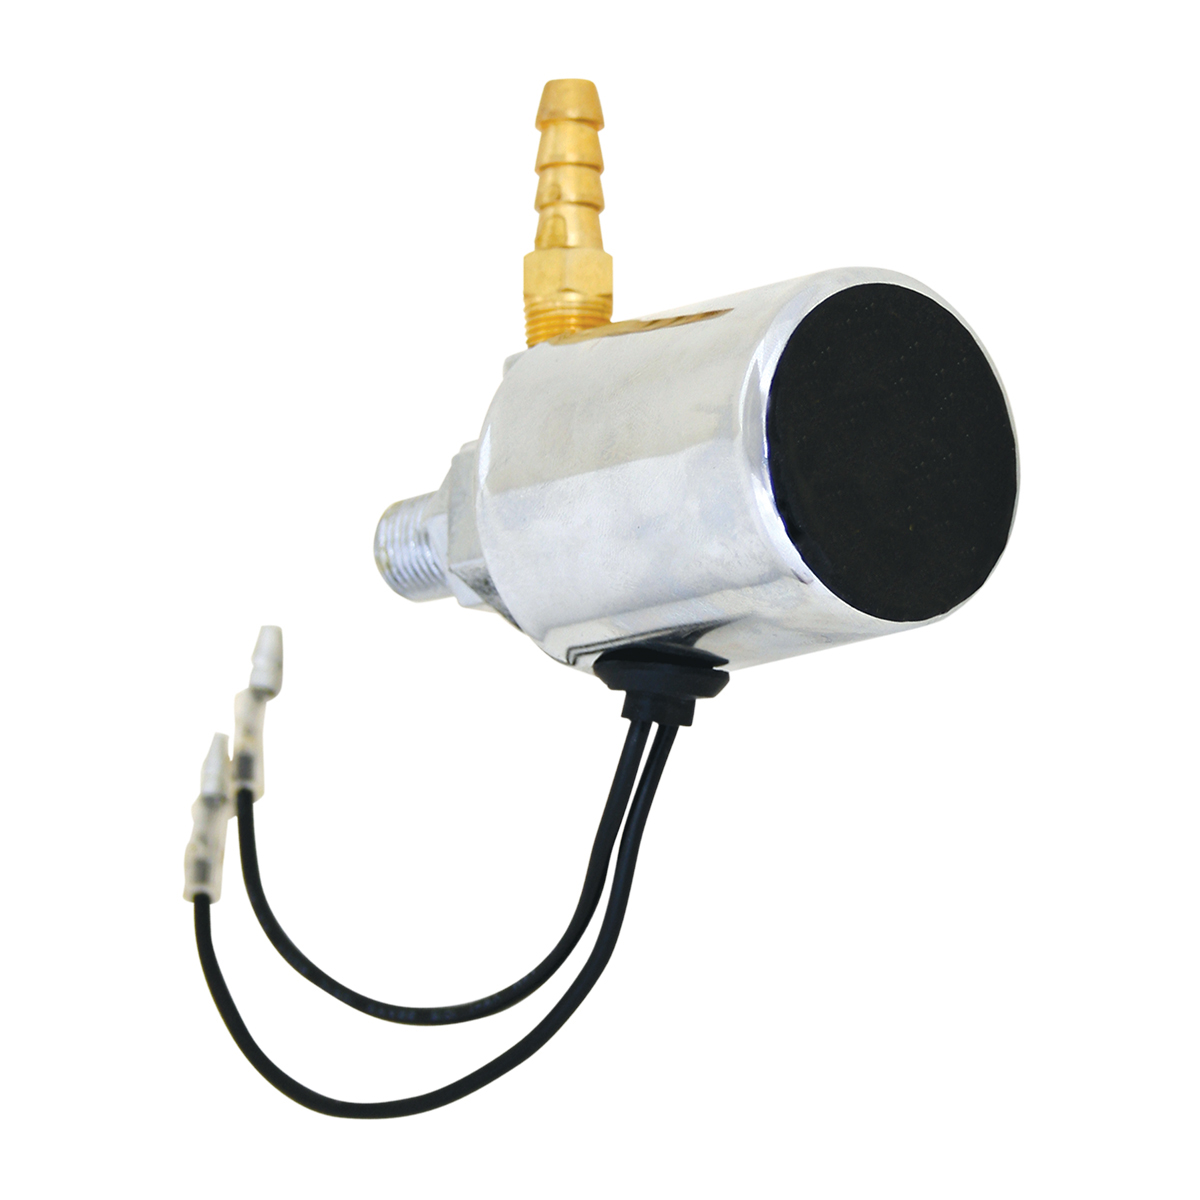 TRAIN & TRUCK AIR HORN 12v/24v SOLENOID Heavy Duty 1/4""